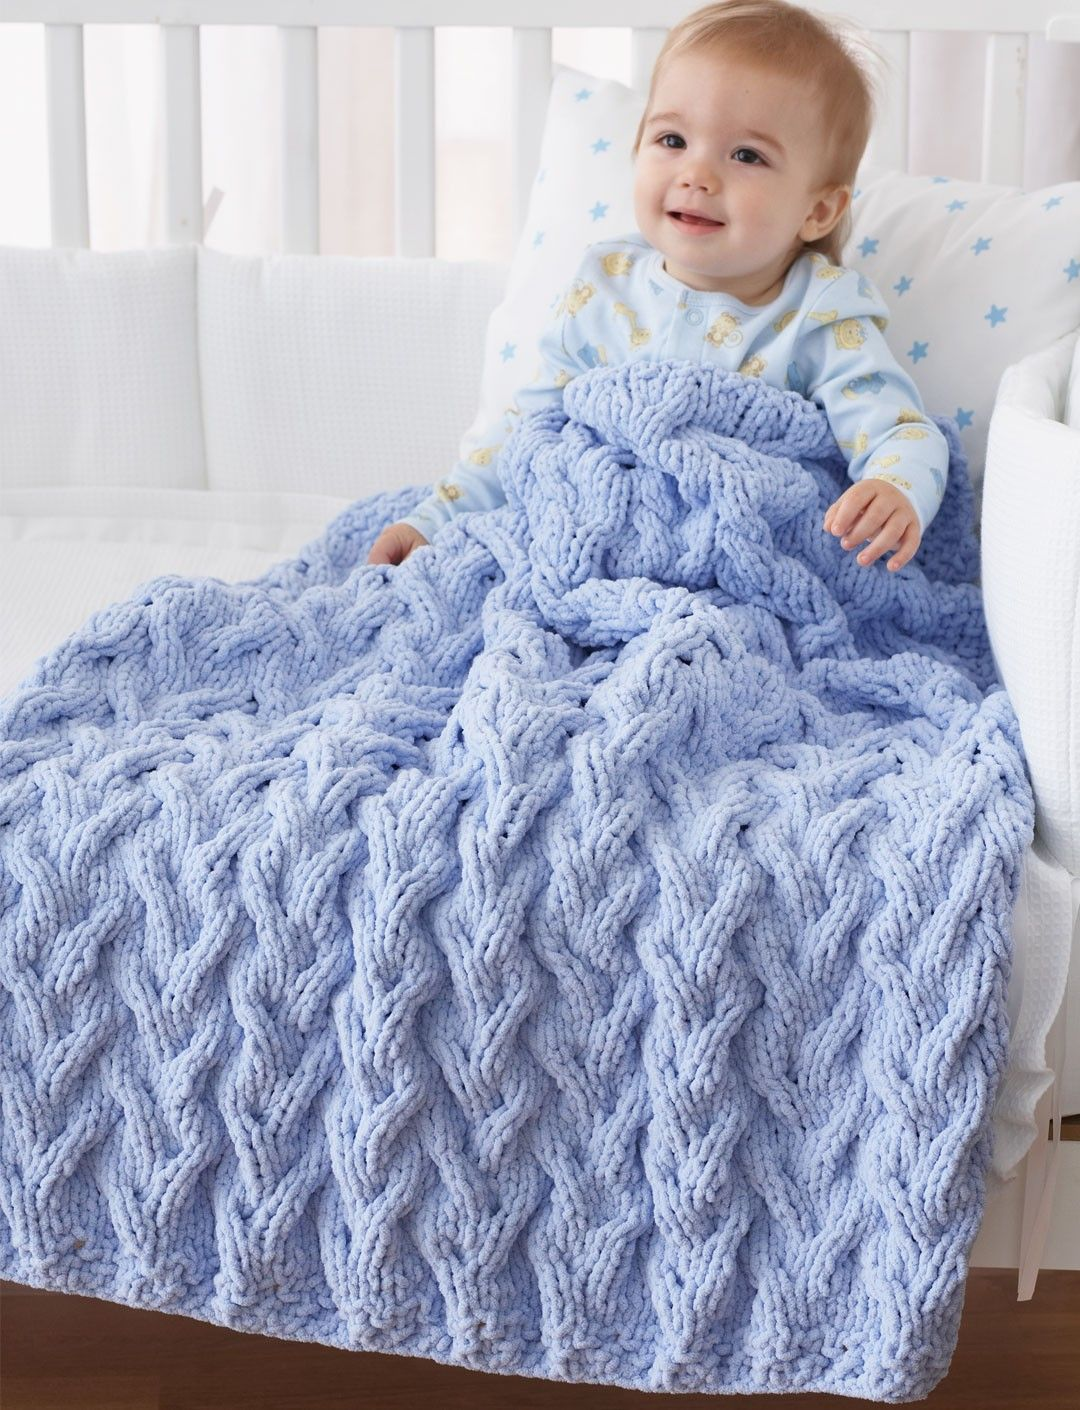 Baby Afghan Knitting Patterns : Cable Afghan Knitting Patterns Cable, Blanket and ...